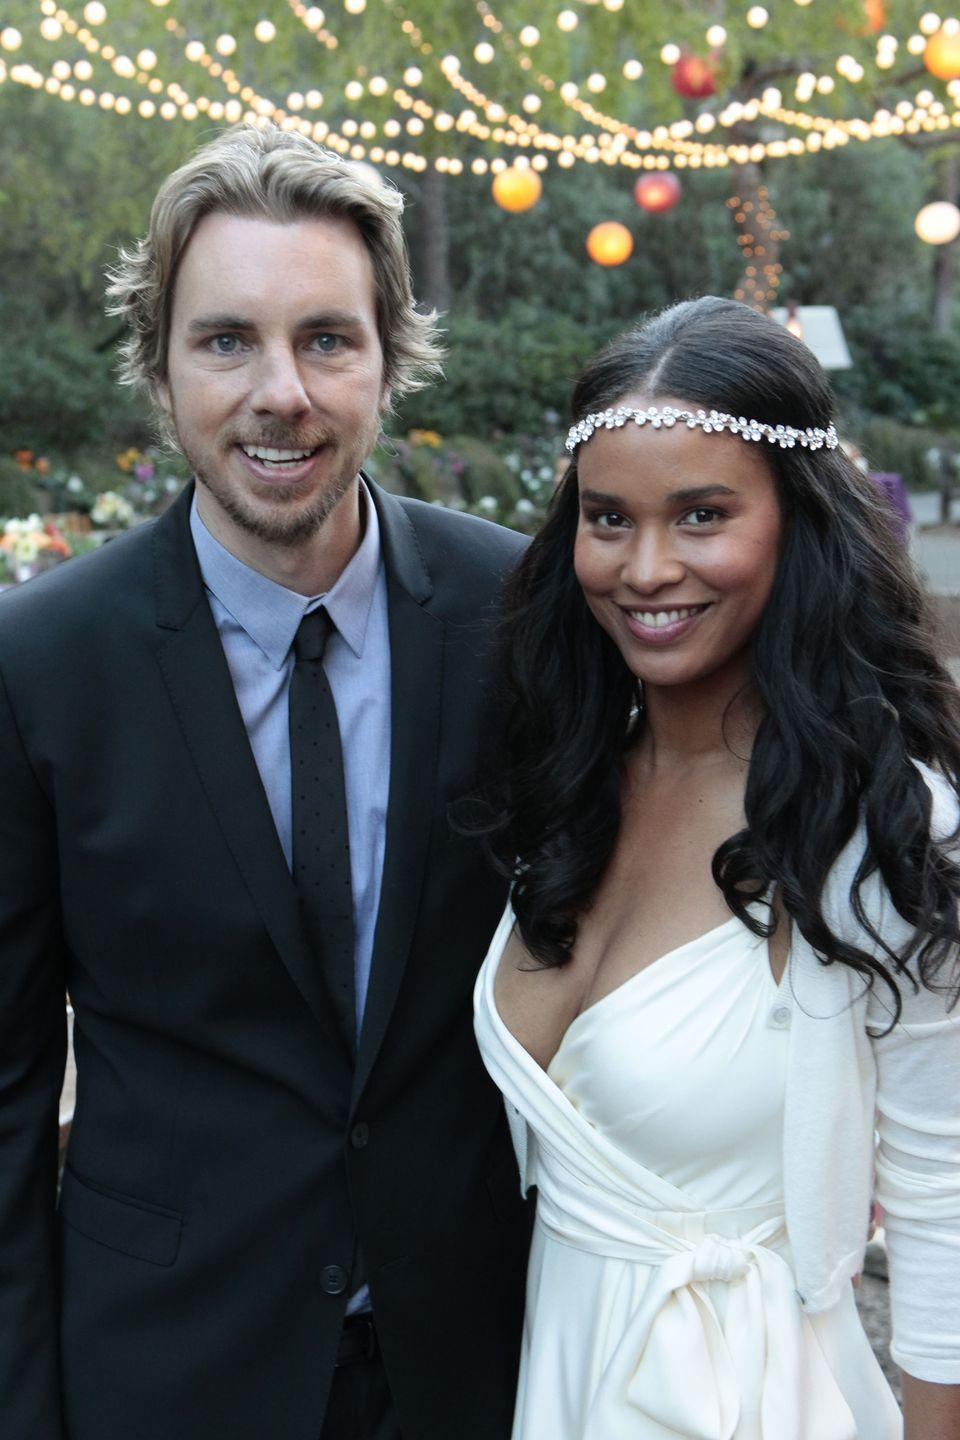 <p>We're totally here for the casual vibes of Crosby and Jasmine's backyard wedding ceremony—not to mention Jasmine's simple wrap dress and white cardigan combo. </p>